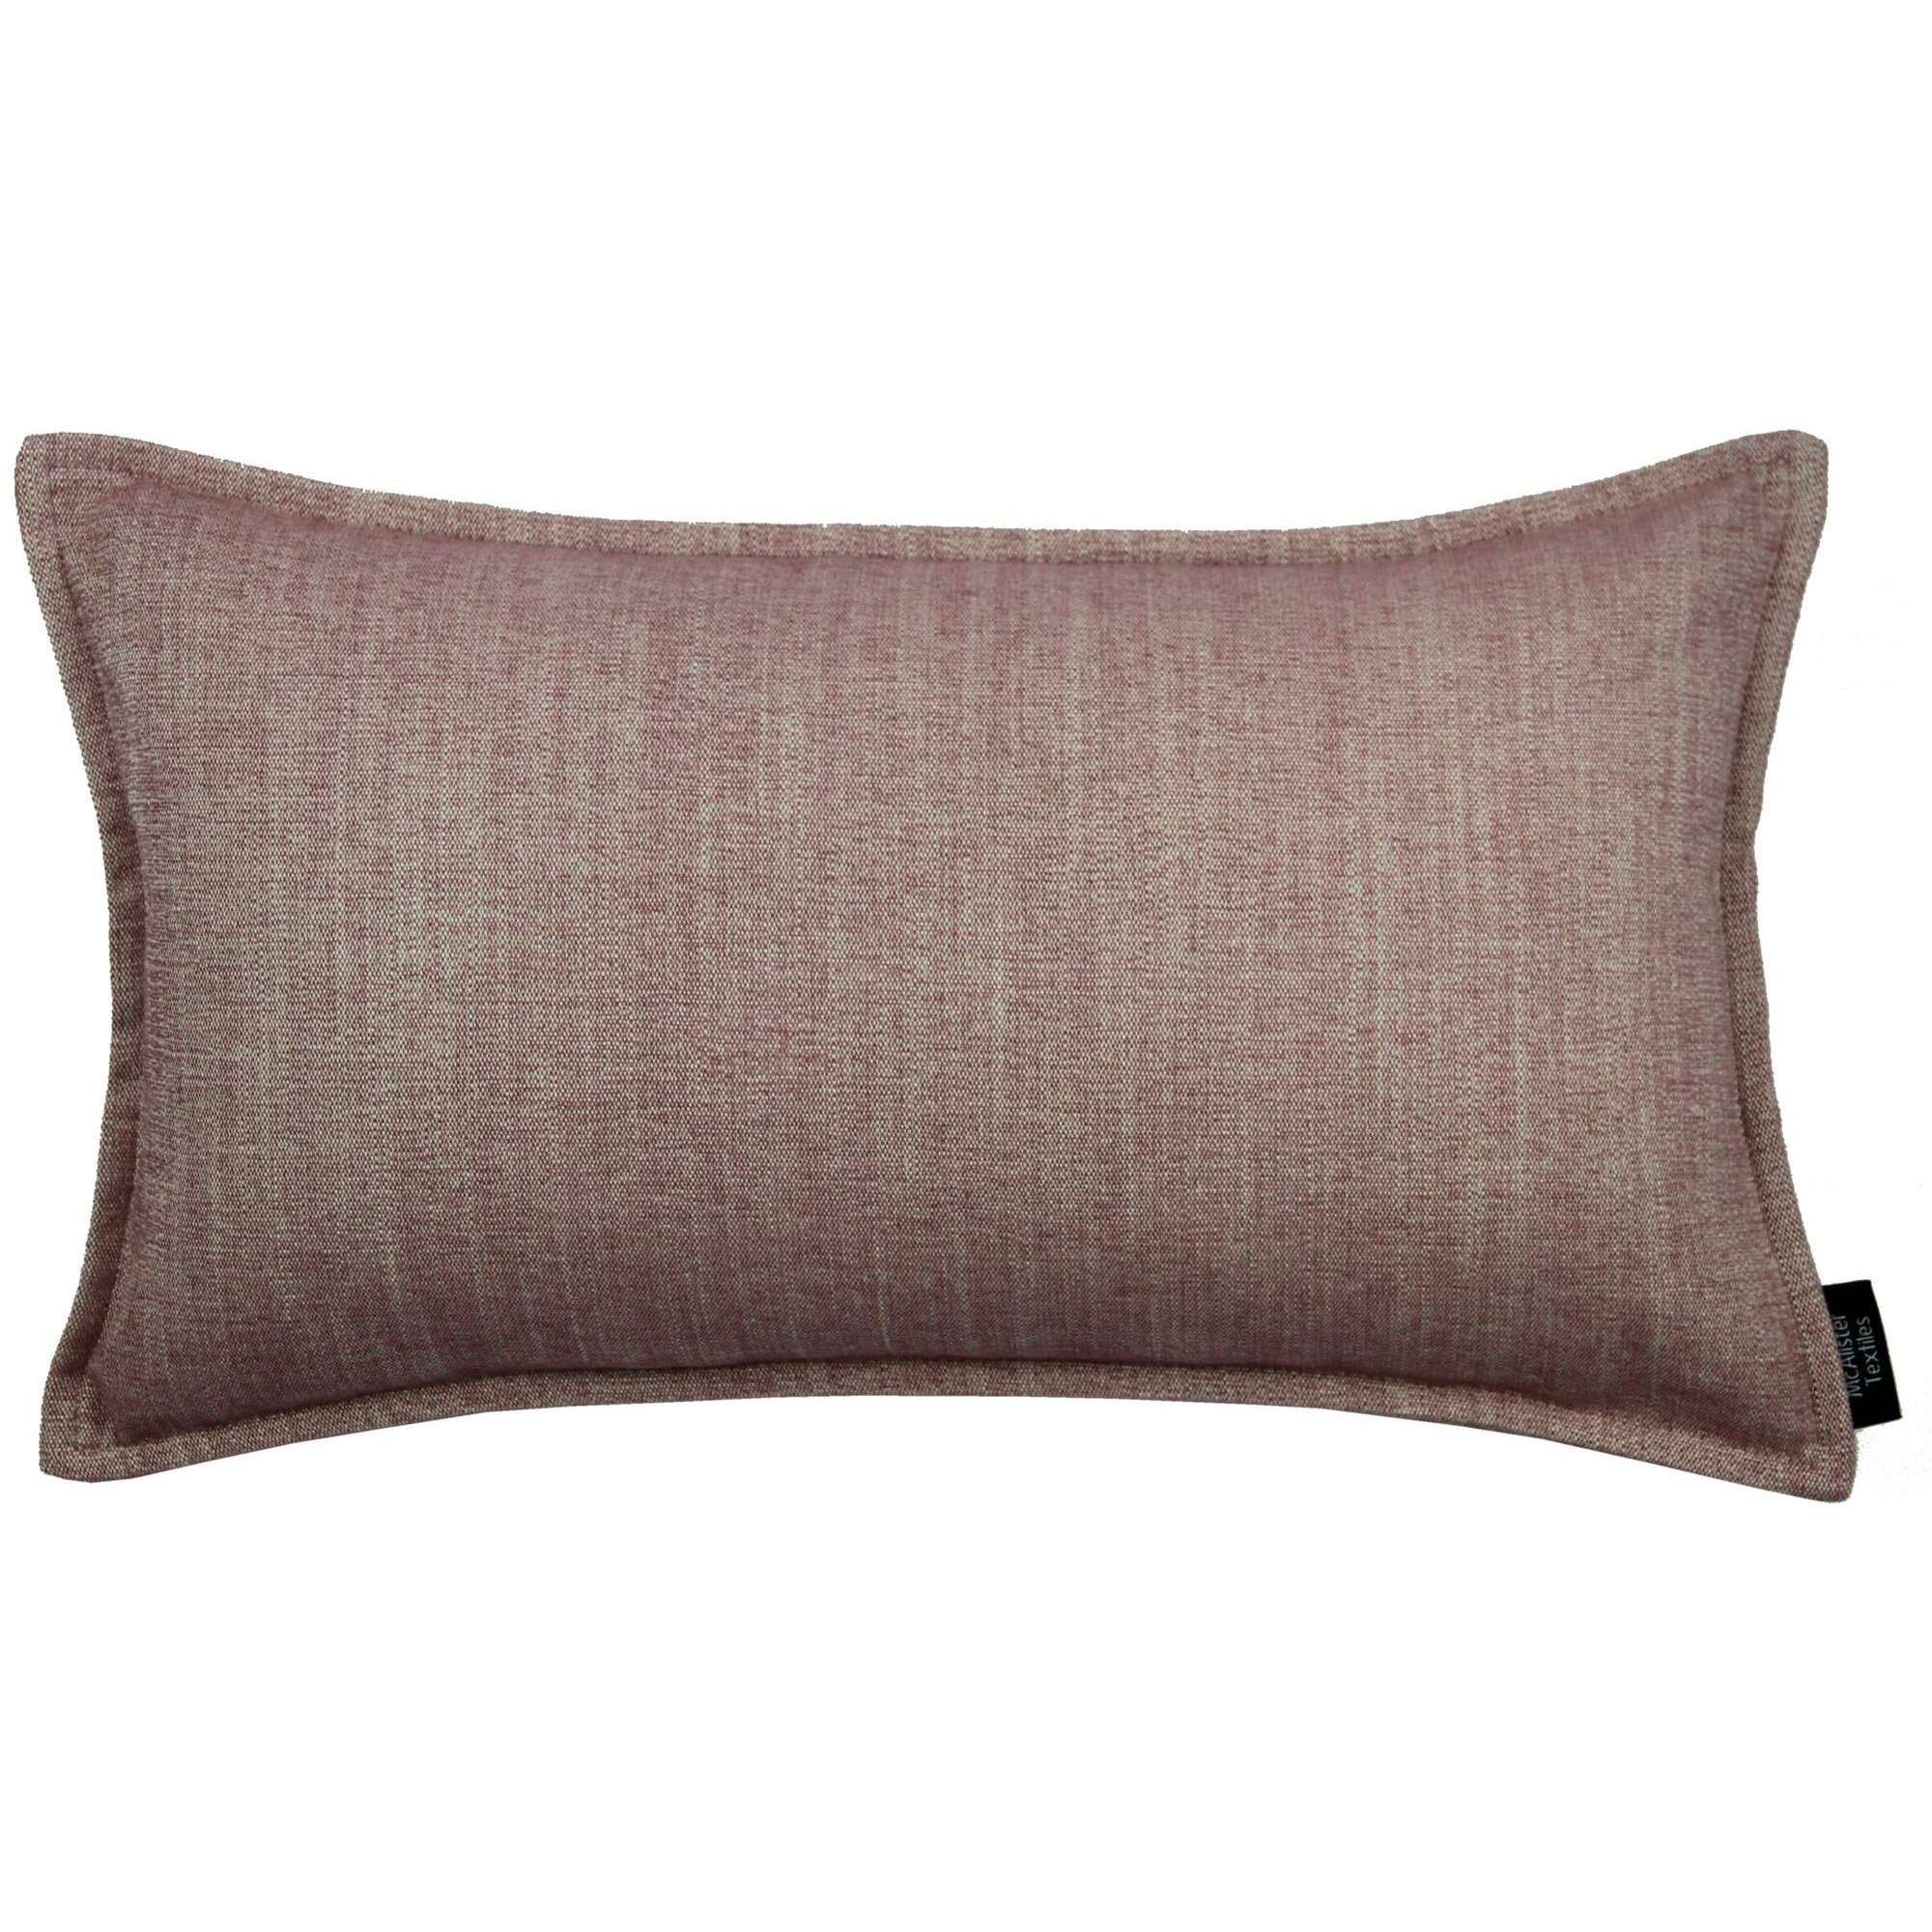 McAlister Textiles Rhumba Blush Pink Pillow Pillow Cover Only 50cm x 30cm